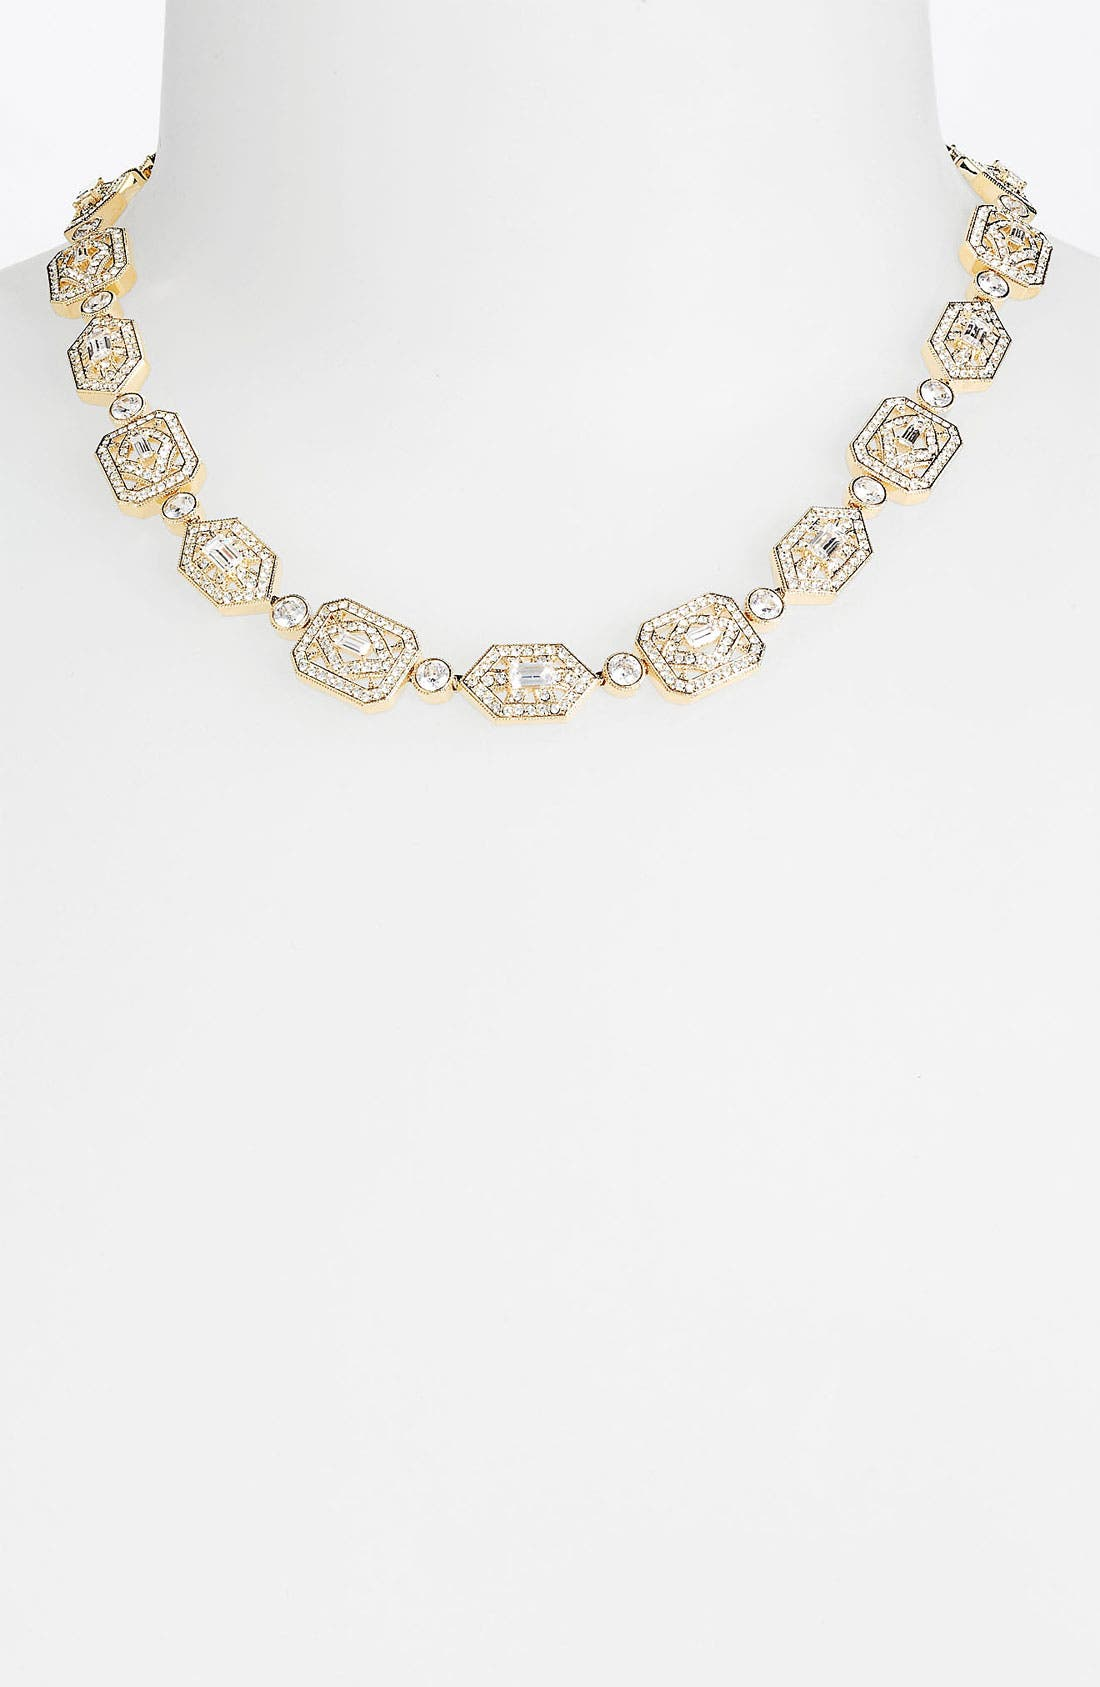 Main Image - Nadri 'Art Deco' Collar Necklace (Nordstrom Exclusive)